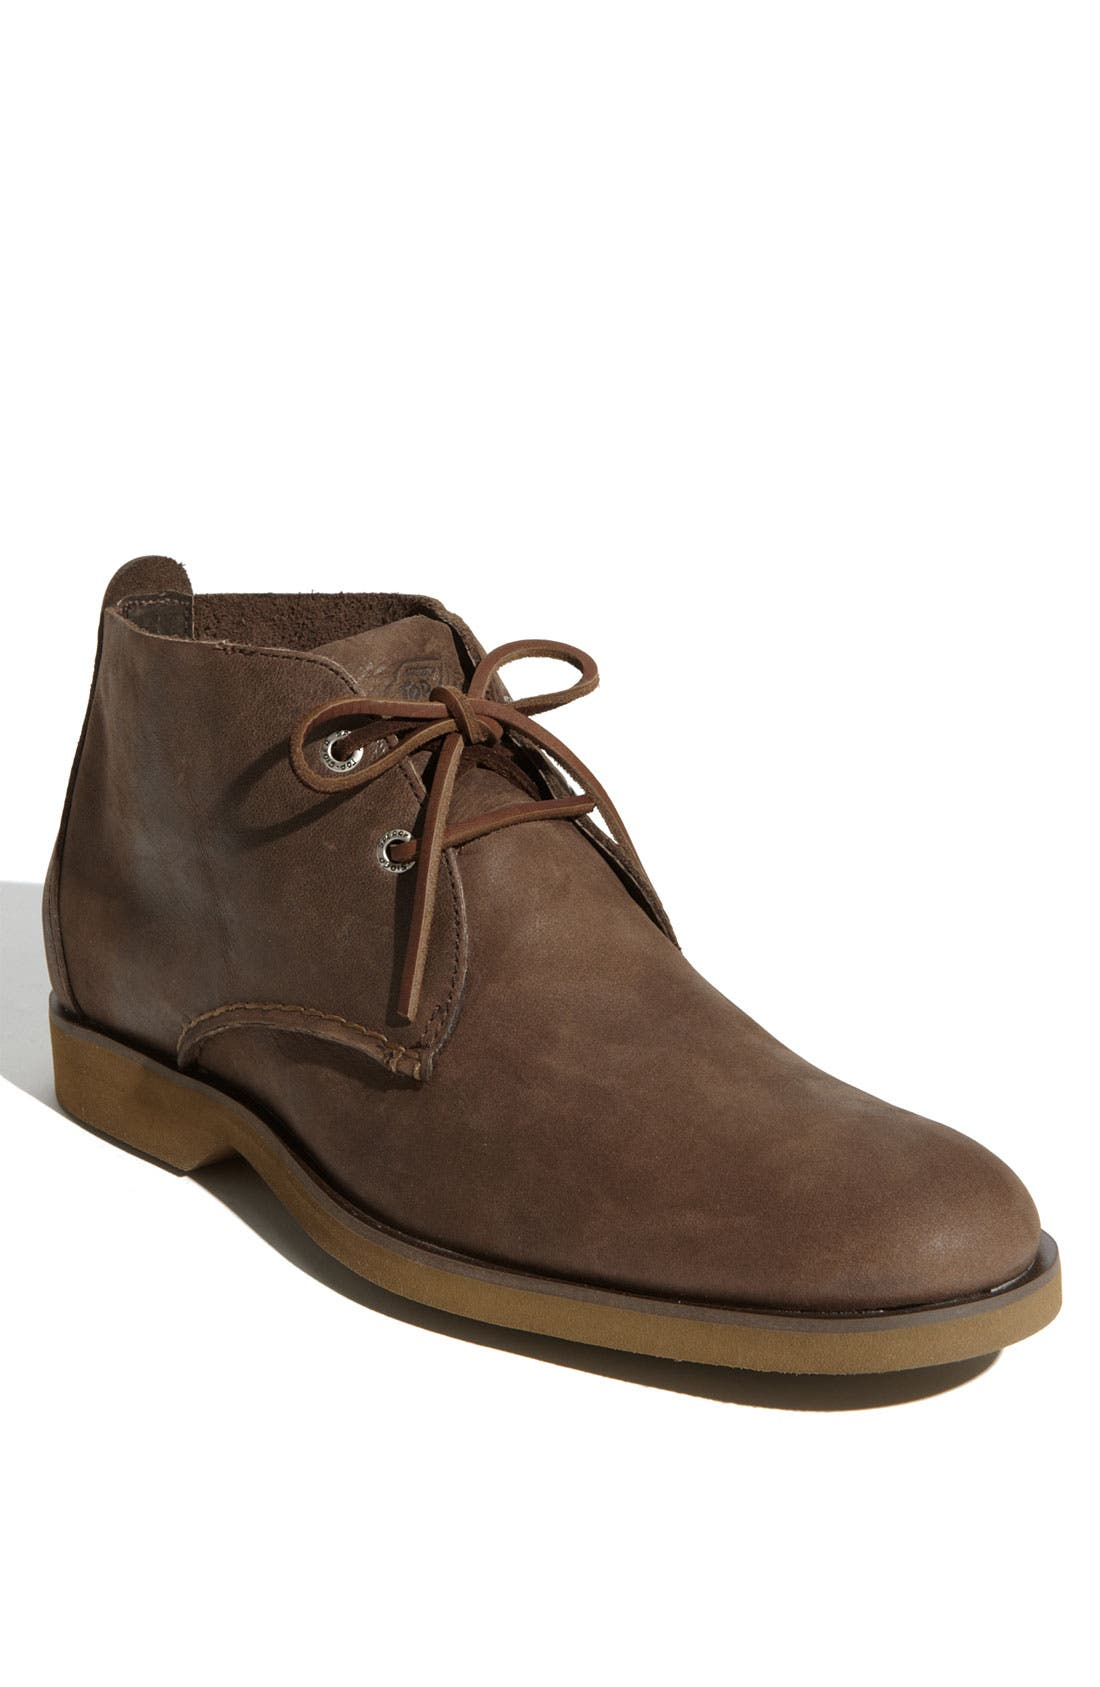 Alternate Image 1 Selected - Sperry Top-Sider® 'Boat Ox' Chukka Boot